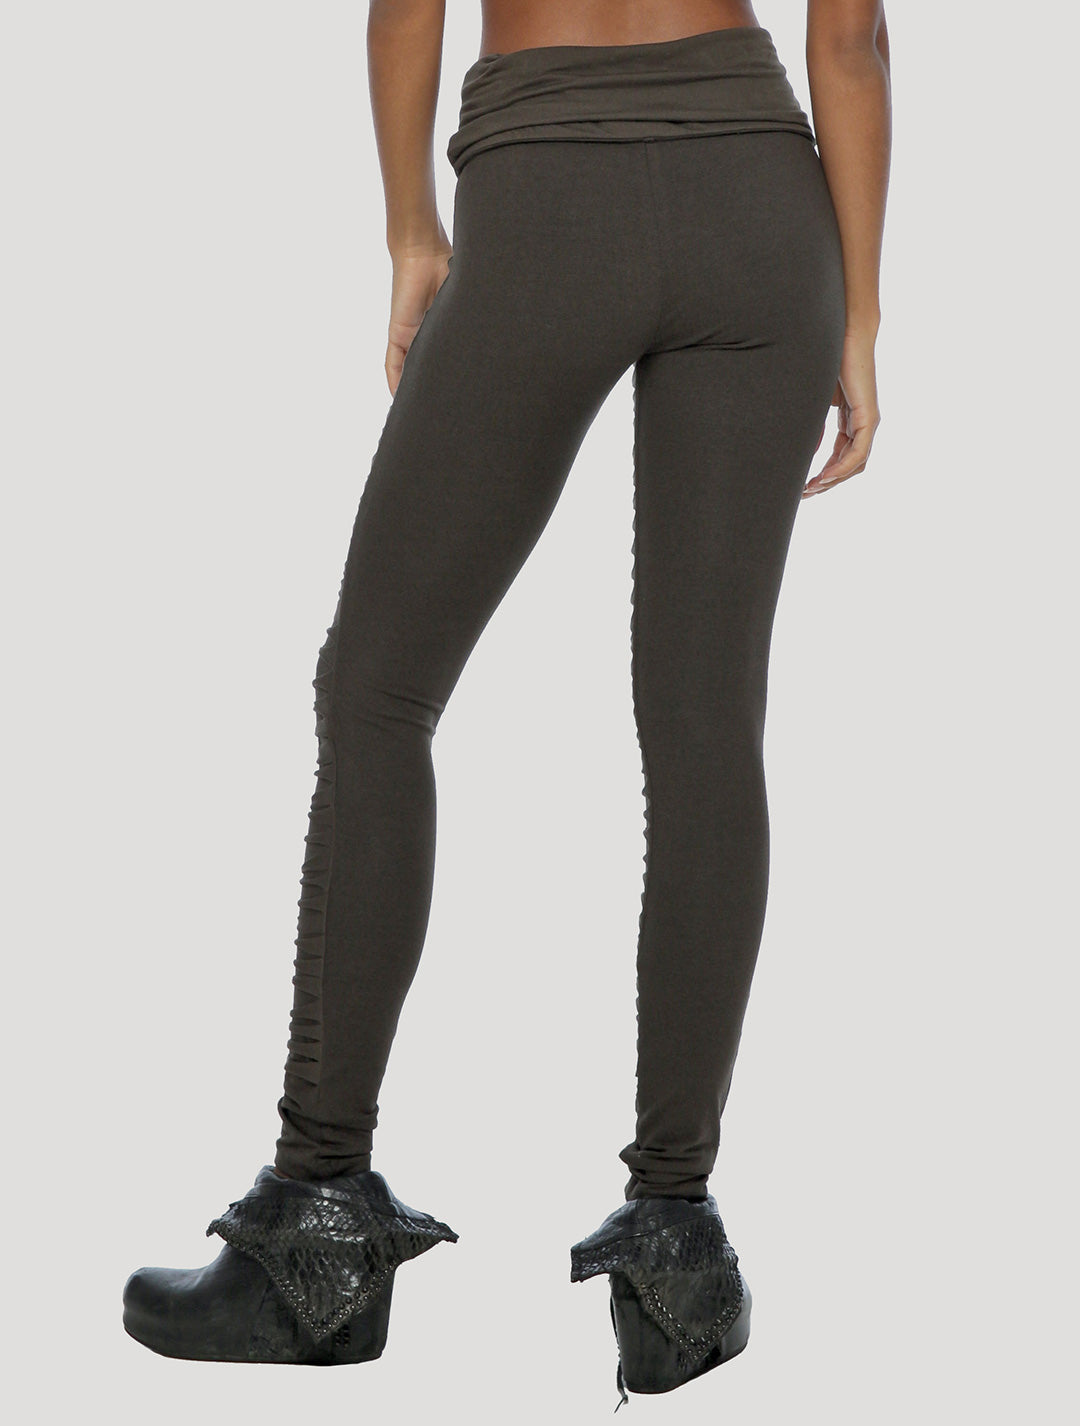 Jiko Foldover Long Leggings - Psylo Fashion